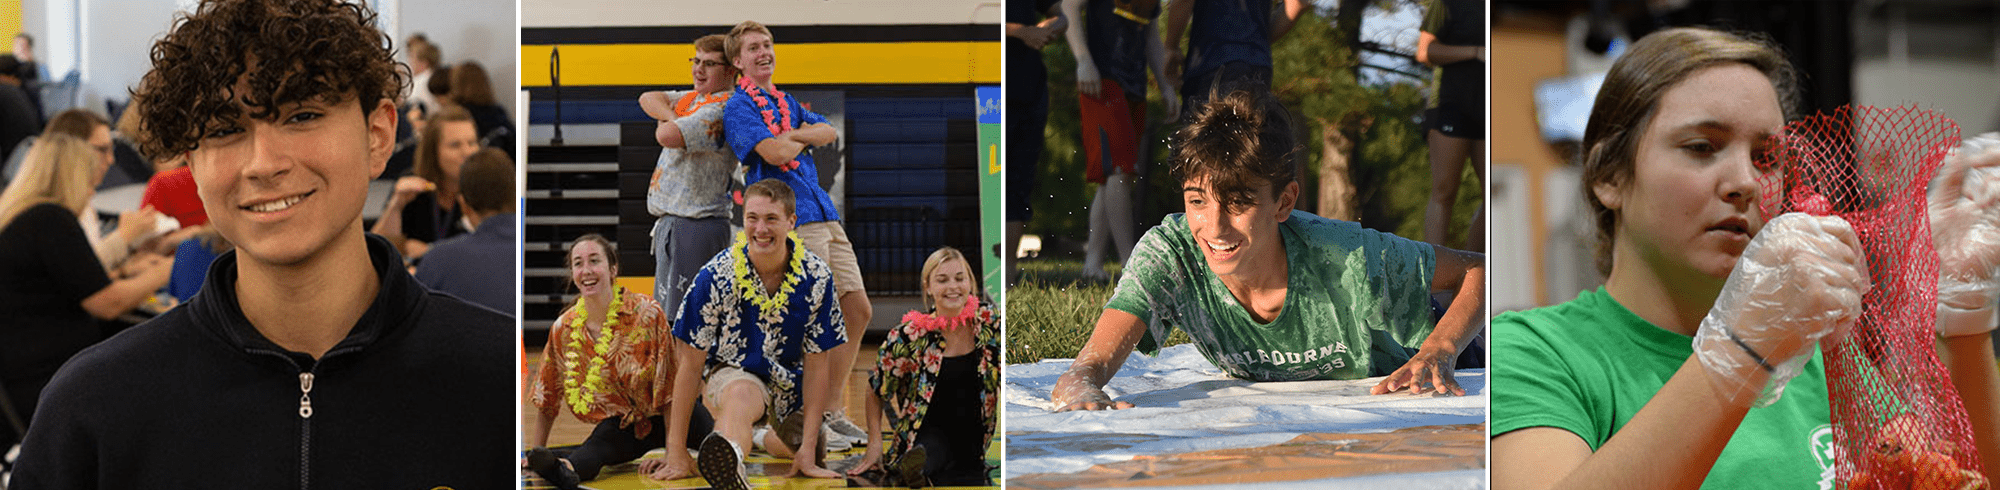 student smiling, group of students posing together in hawiian clothes, a boy doing a slip and slide, a girl with gloves preparing food